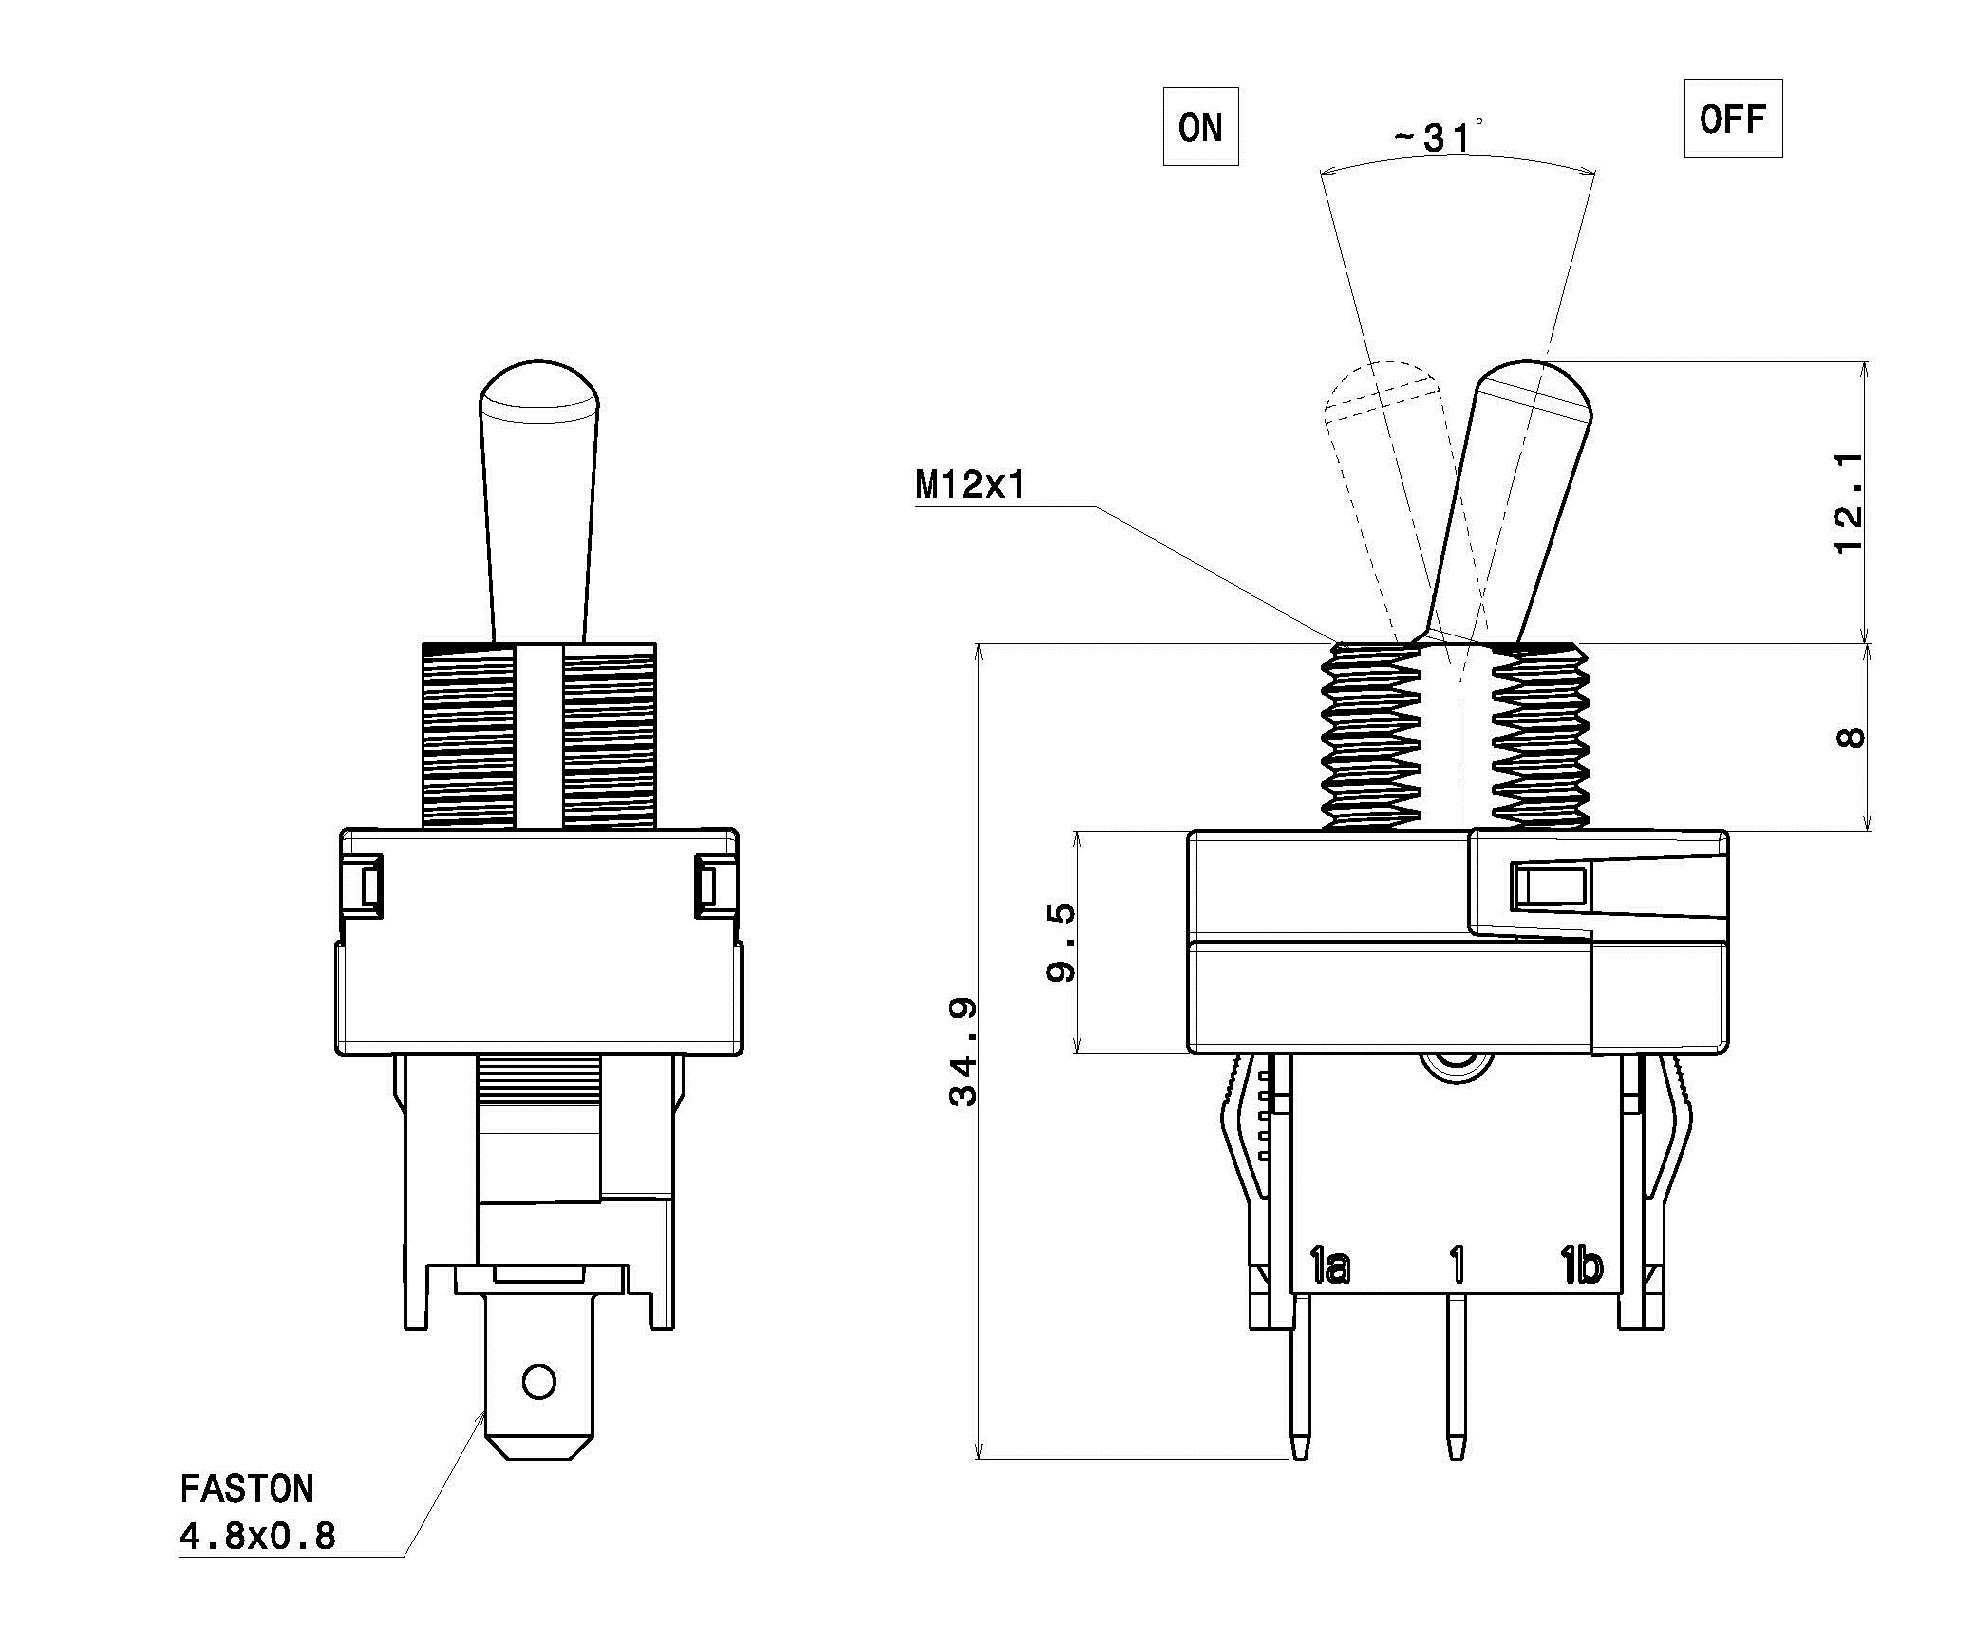 Spdt Toggle Switch Wiring Diagram Tab 4